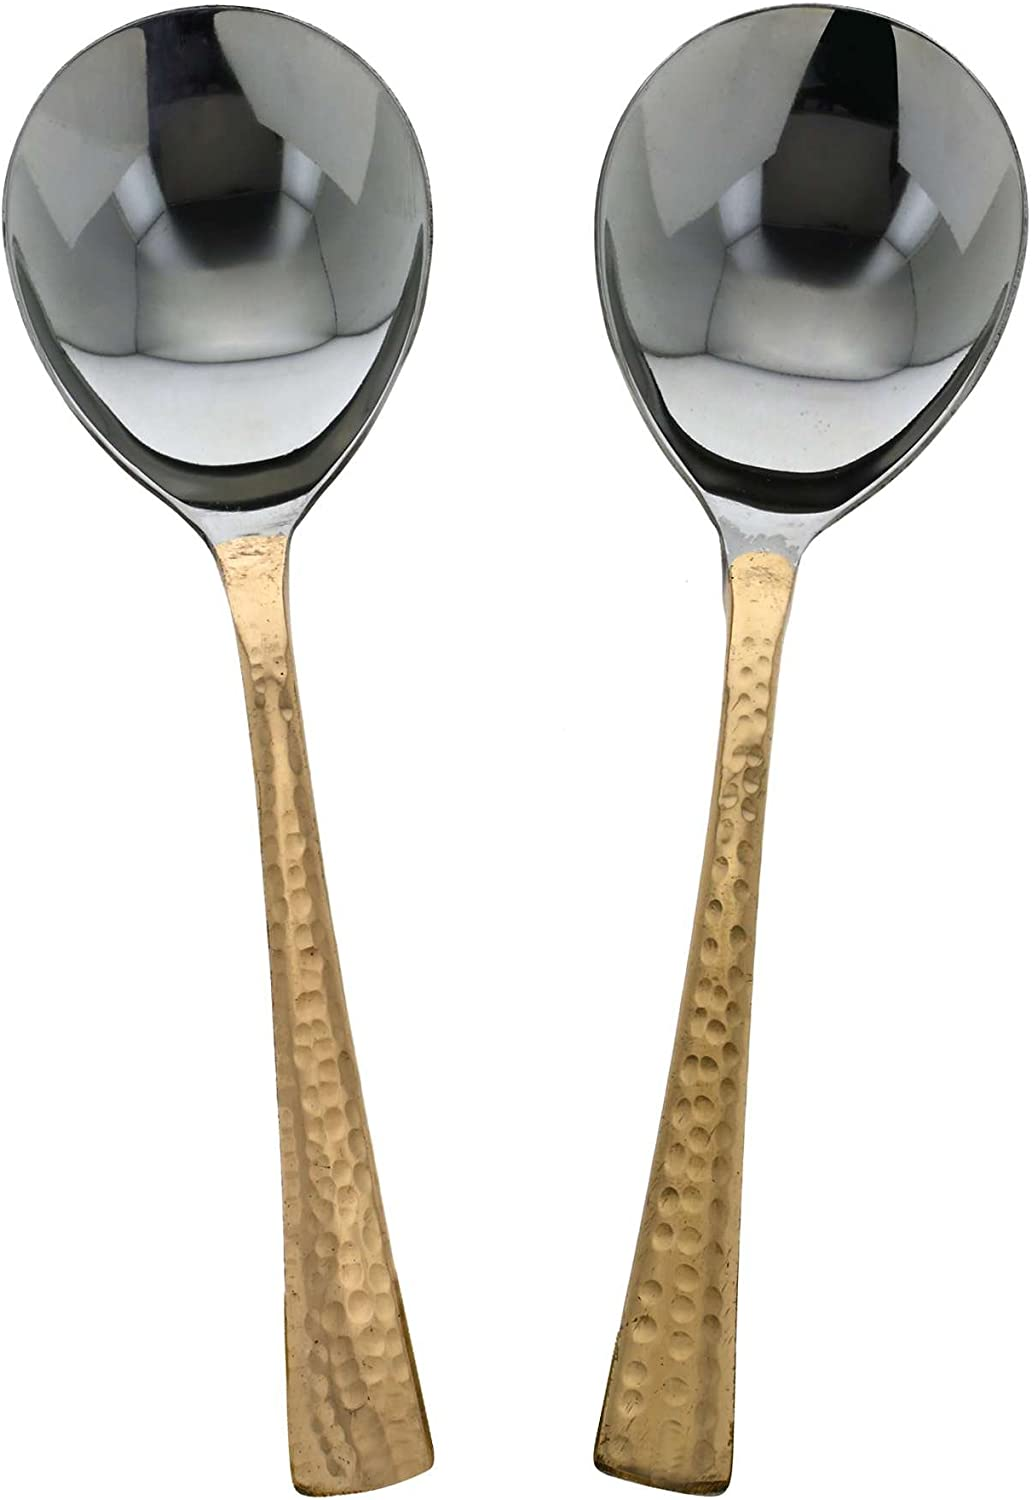 ShalinIndia Handmade Indian Stainless Steel & Copper Serving Spoon Set of 2 - Genuine Copper Dinnerware Serving Pieces